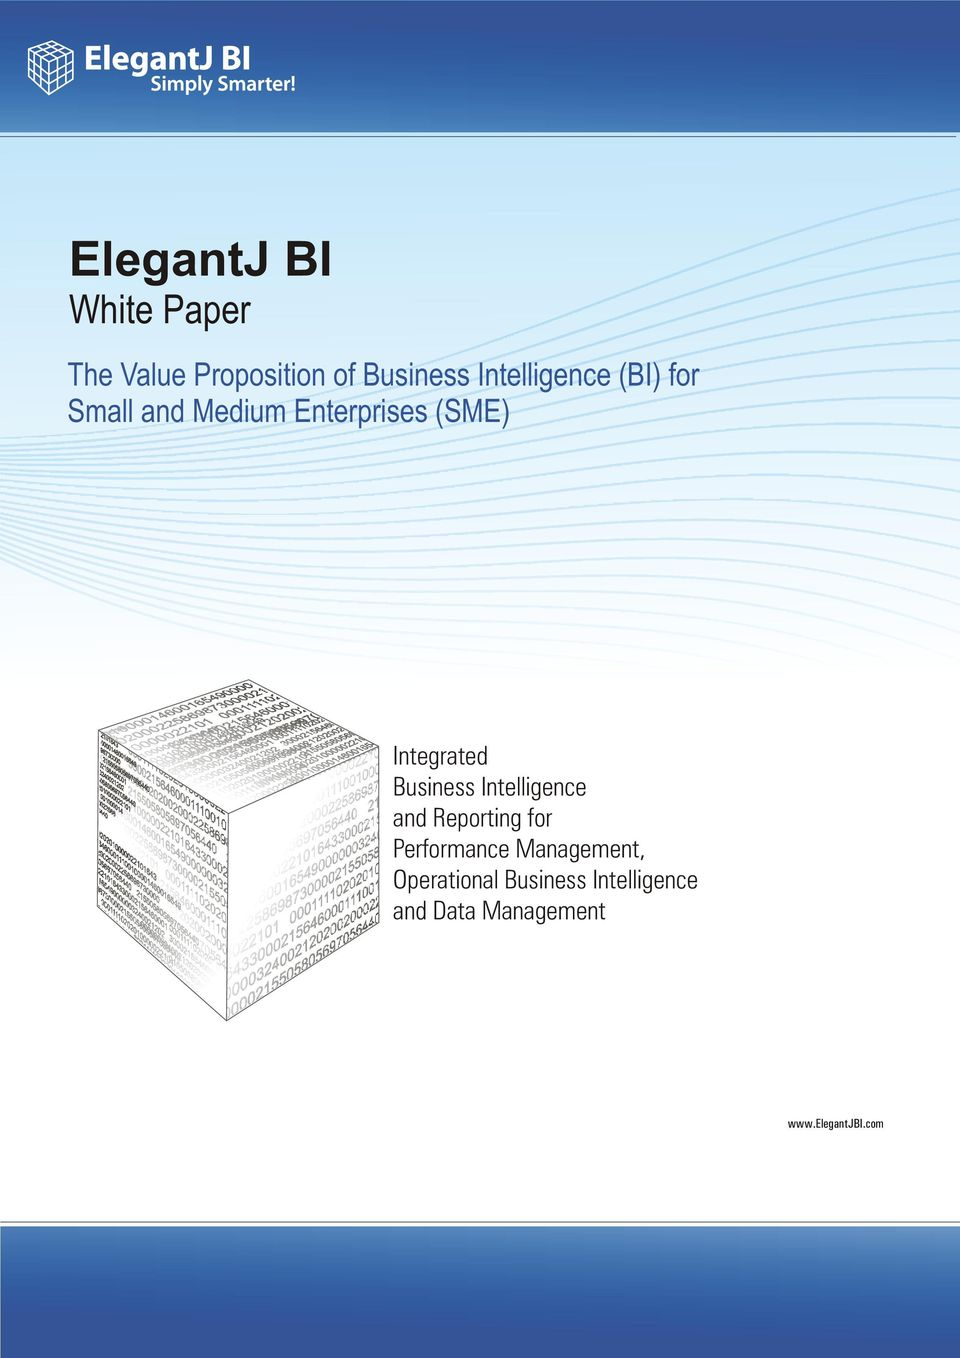 Integrated Business Intelligence and Reporting for Performance